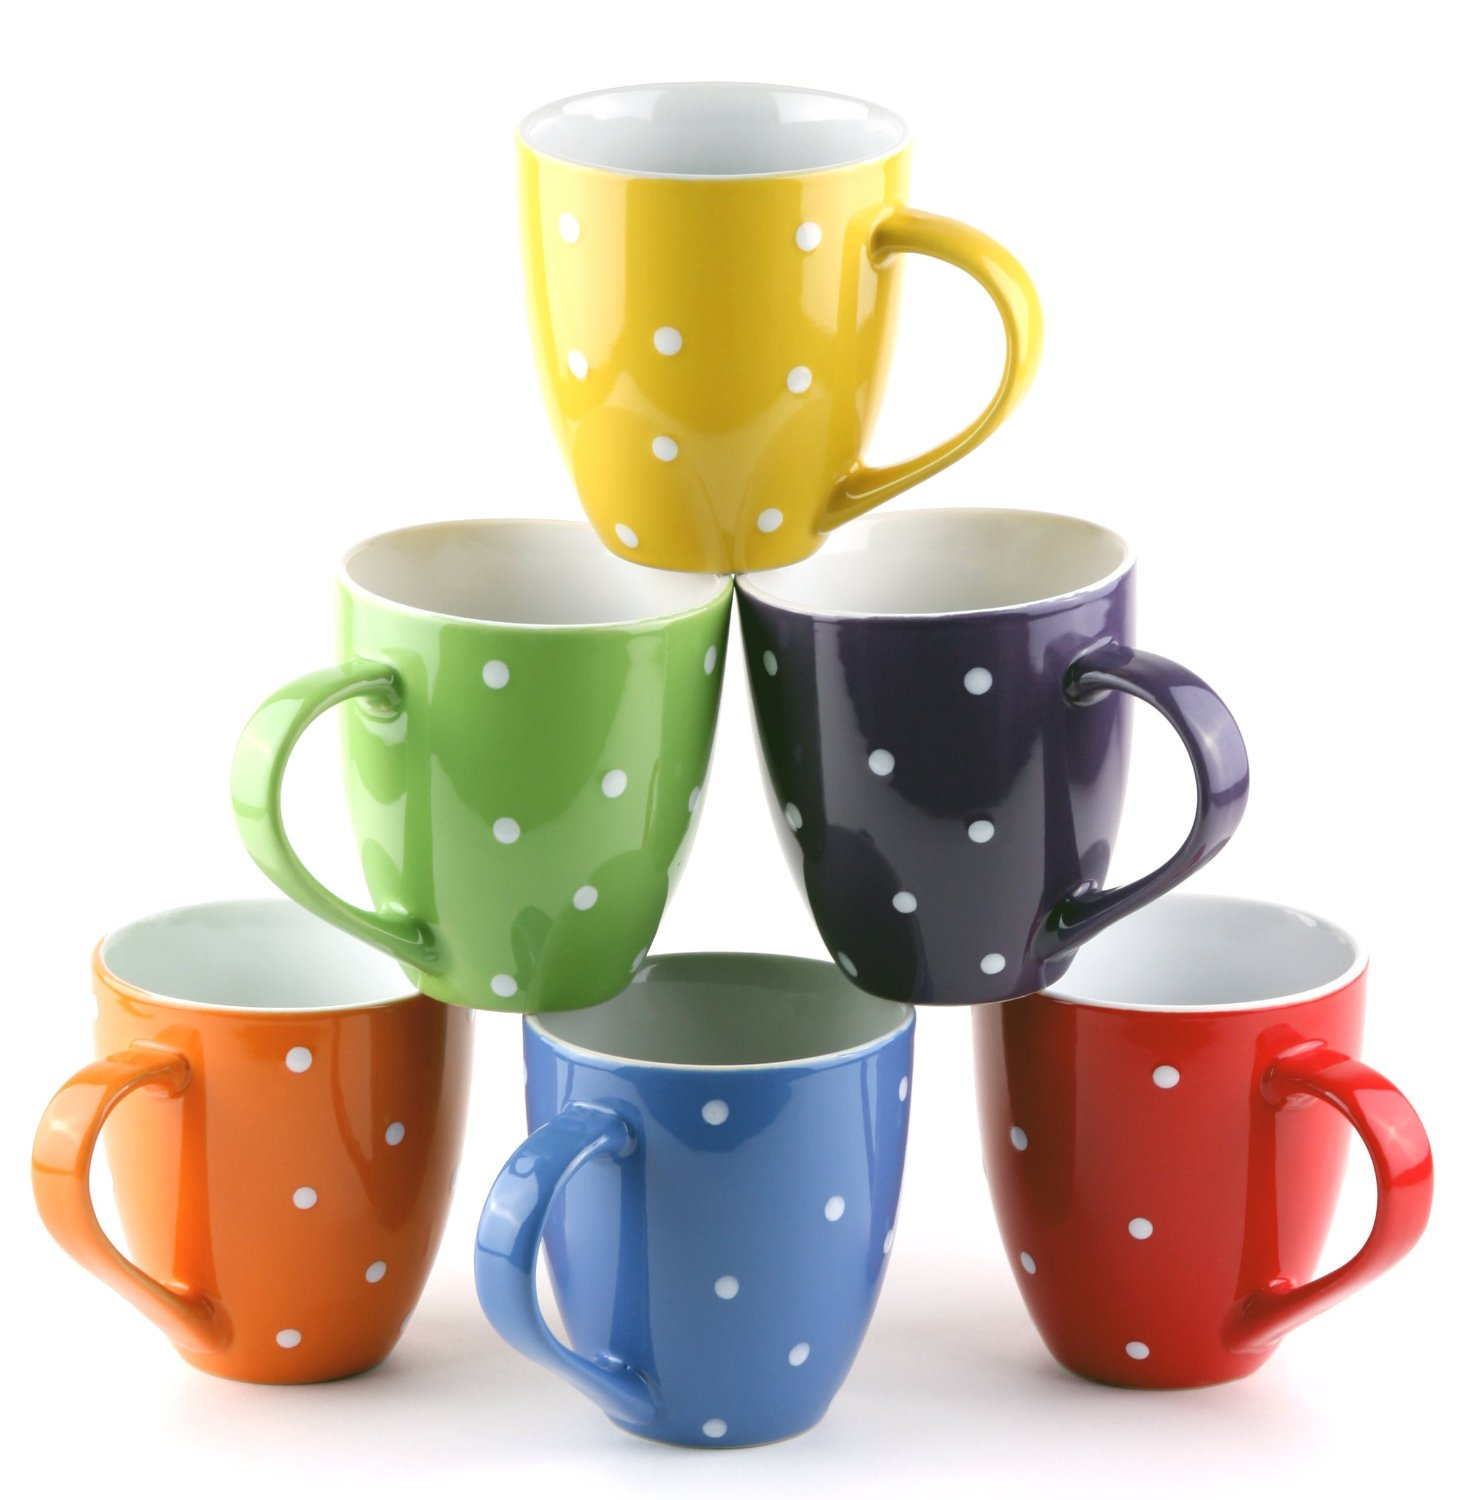 Ounce Coffee Mug Sets